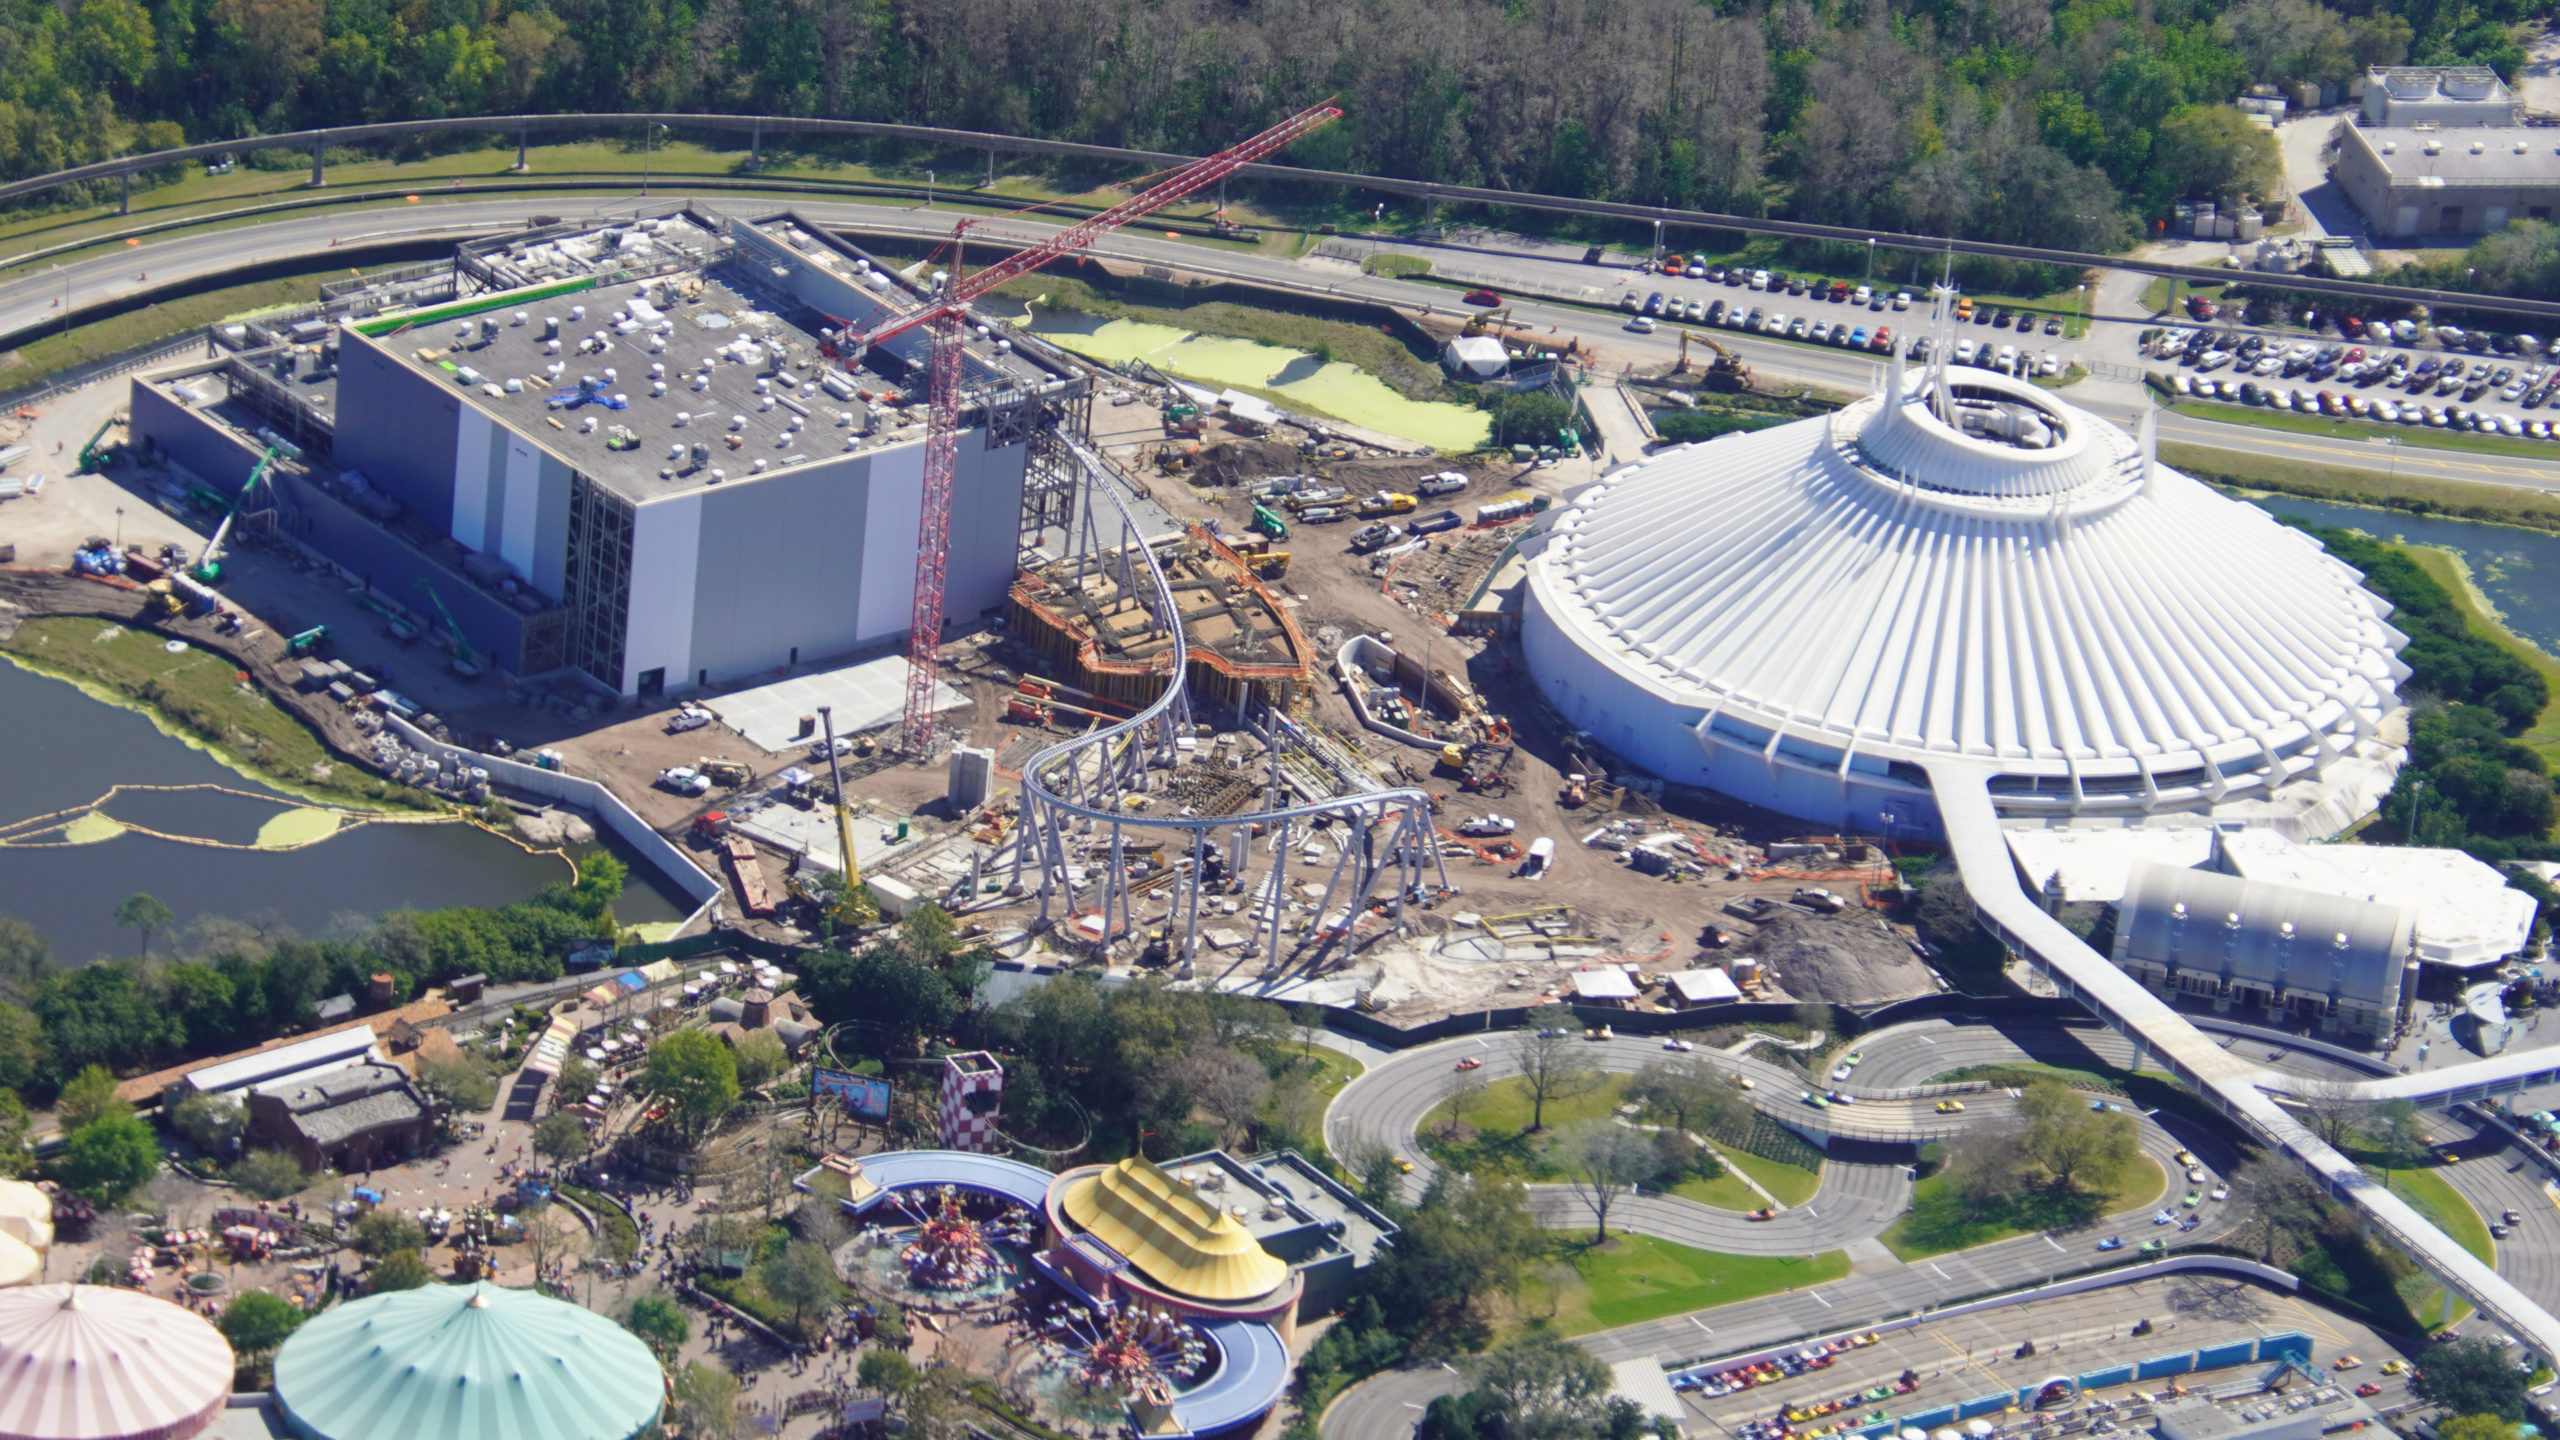 Latest Aerial Photos Of Tron Lightcycle Run Construction At